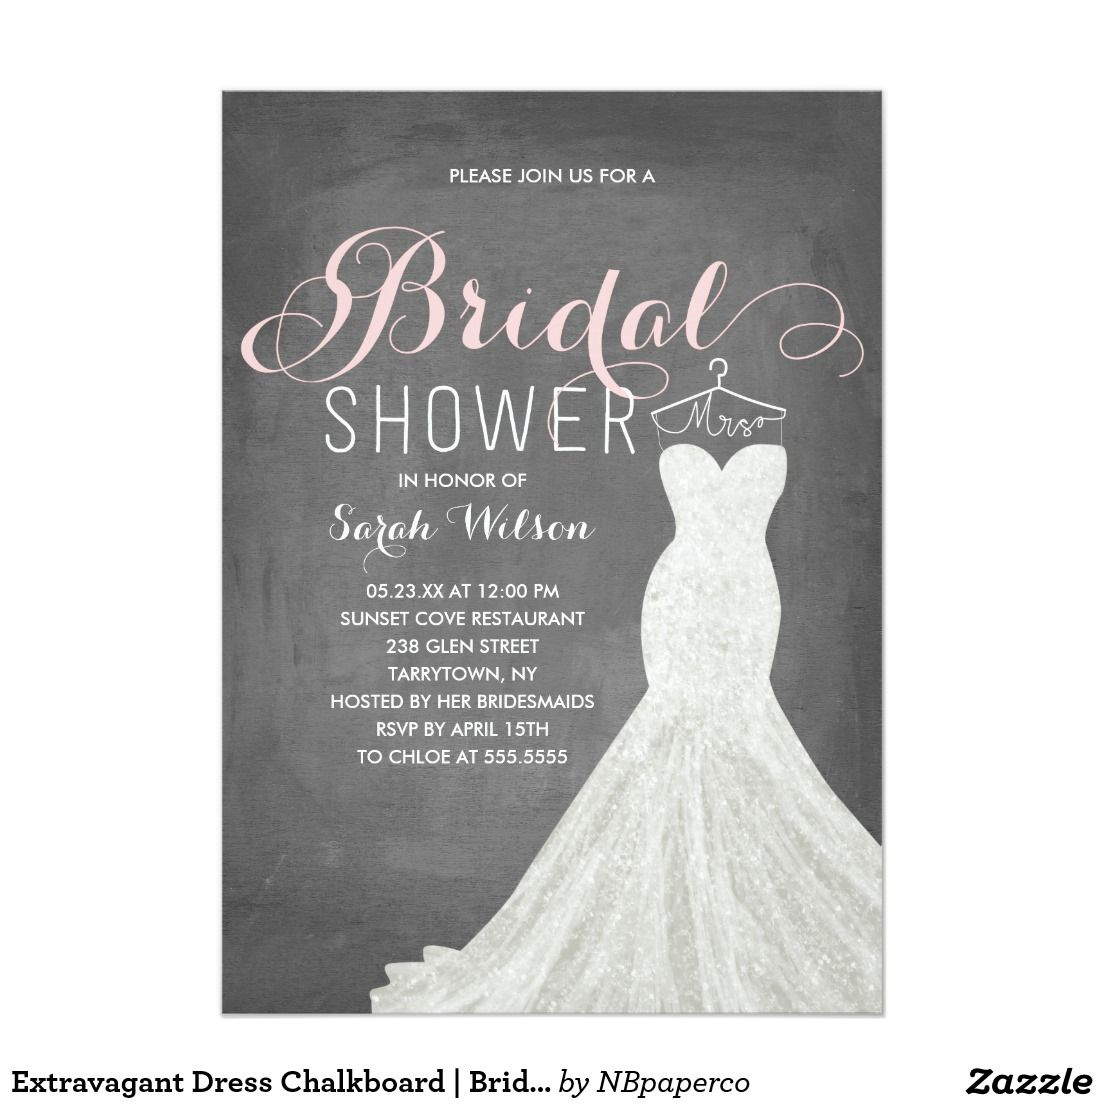 Extravagant Dress Chalkboard Bridal Shower Card Chalkboard